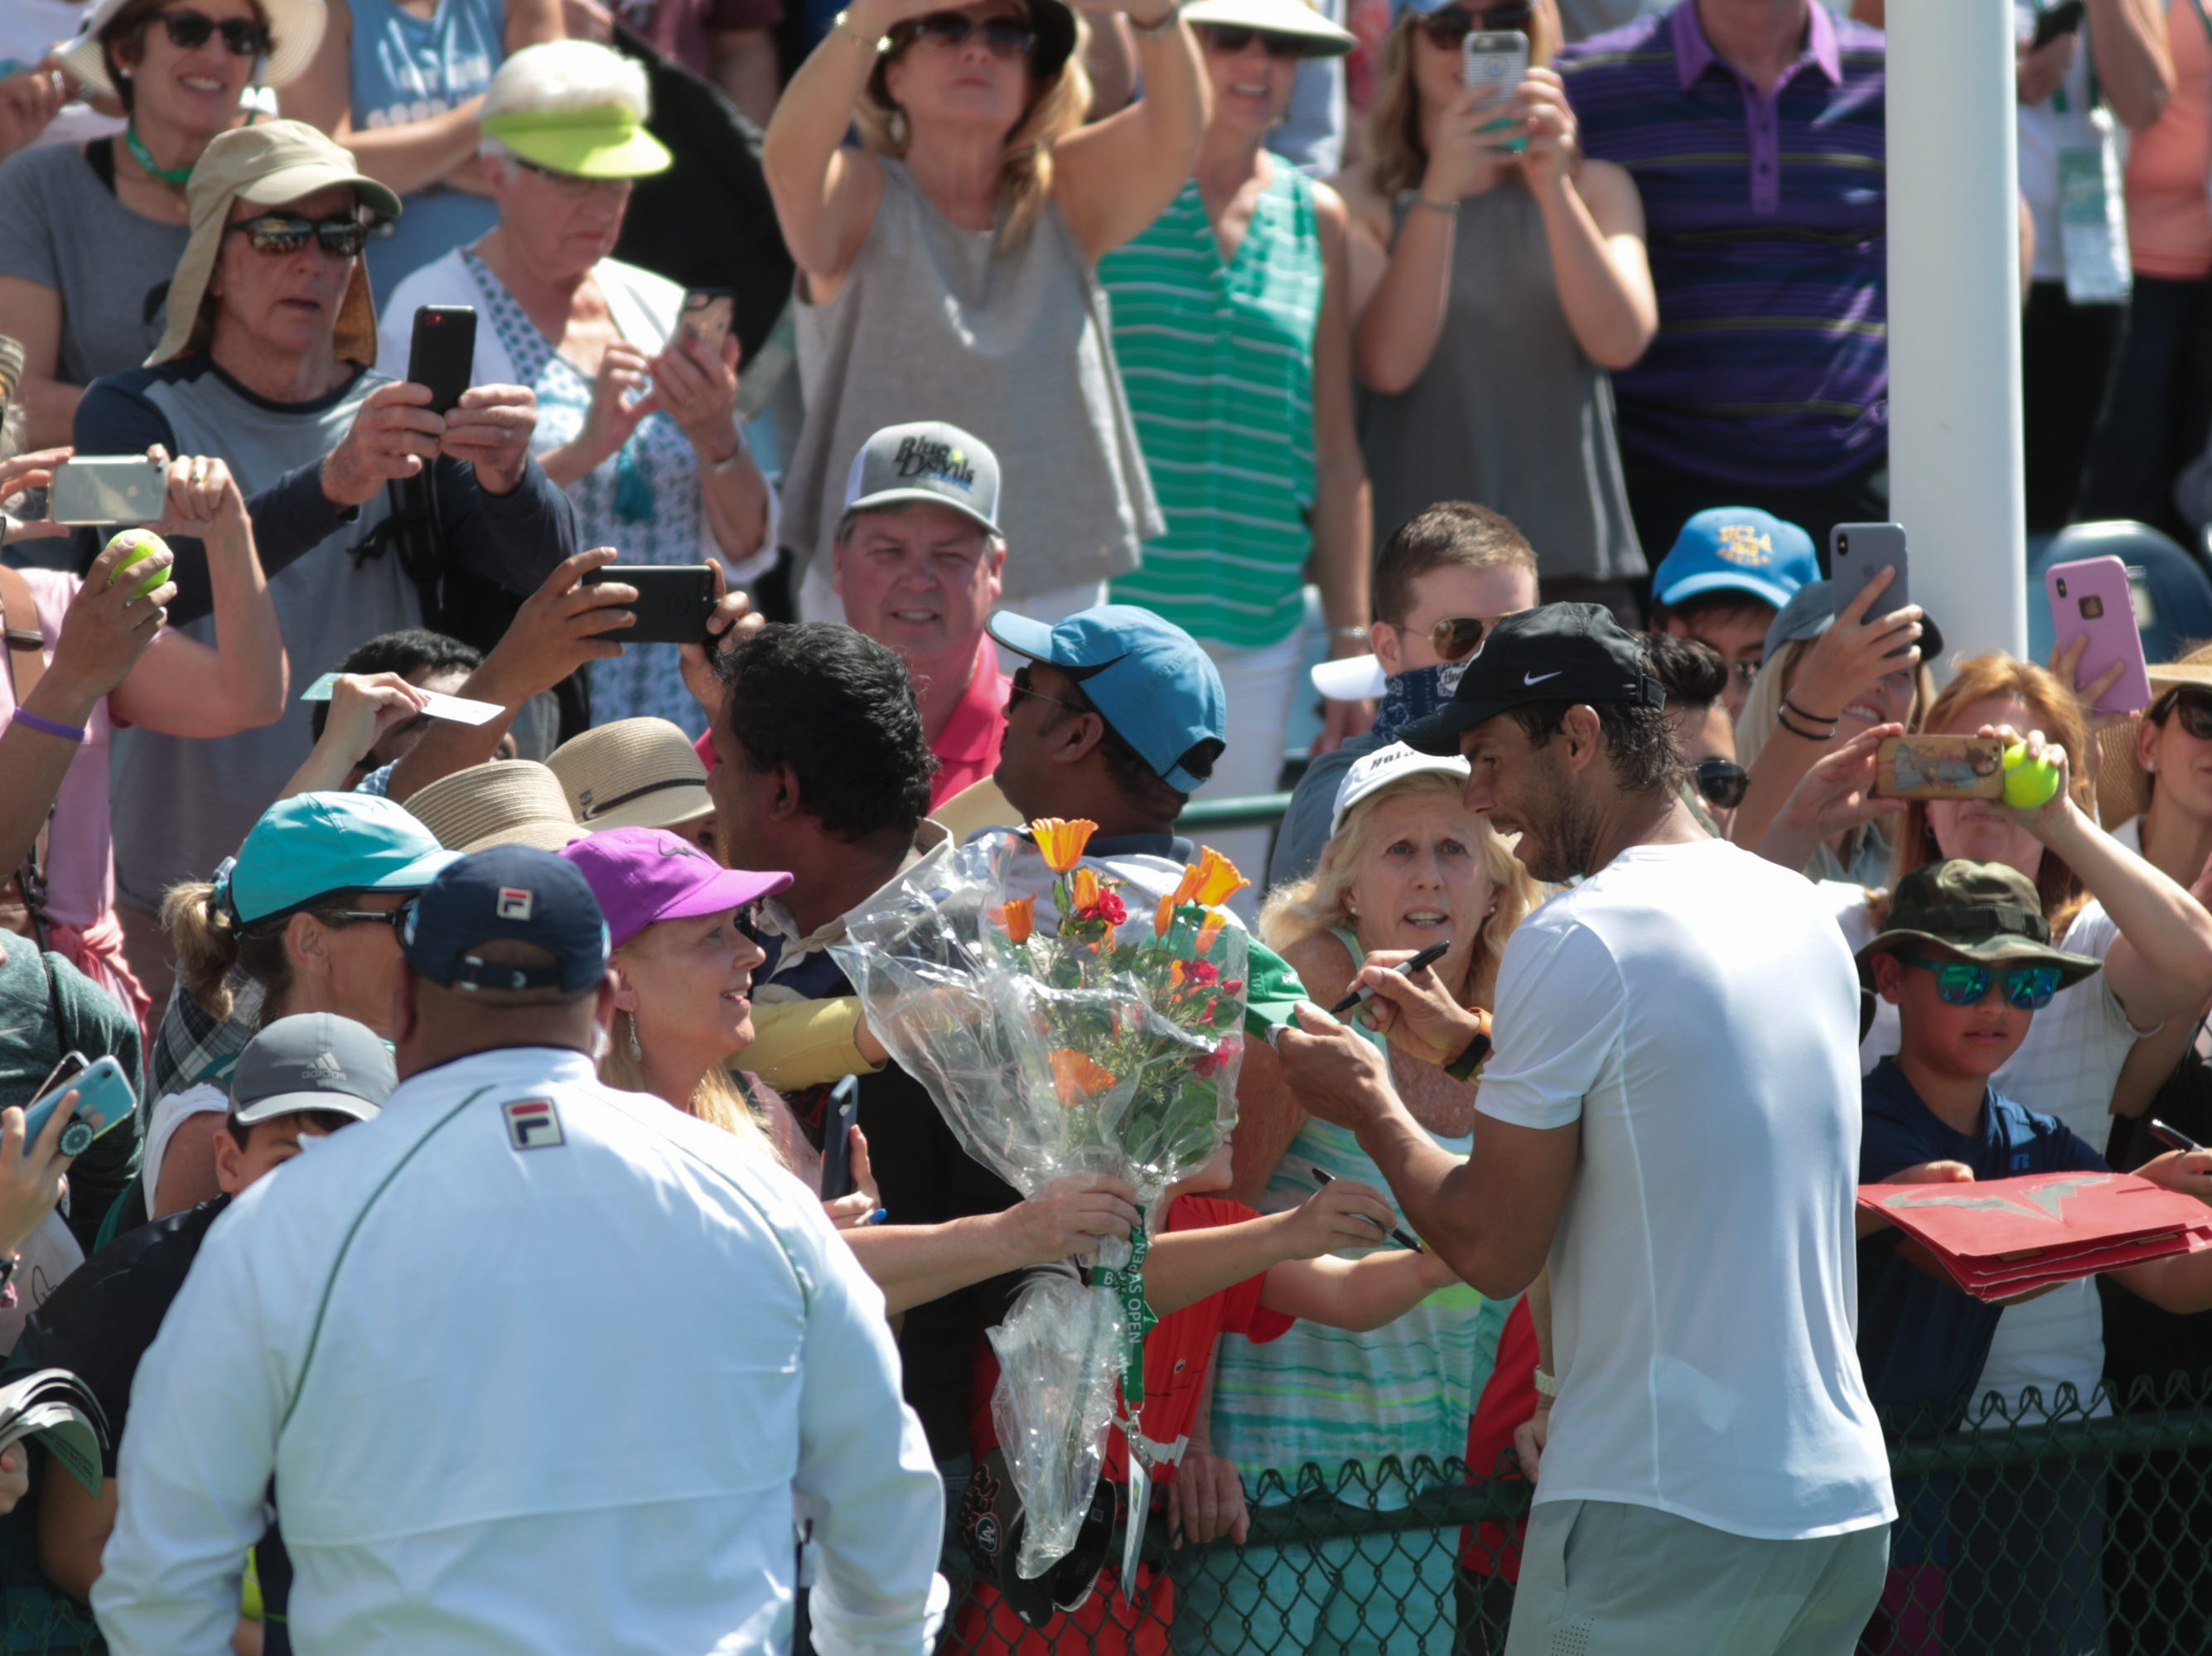 Rafael Nadal receives flowers from a fan after practicing at the BNP Paribas Open, Indian Wells, Calif., Thursday, March 7, 2019.